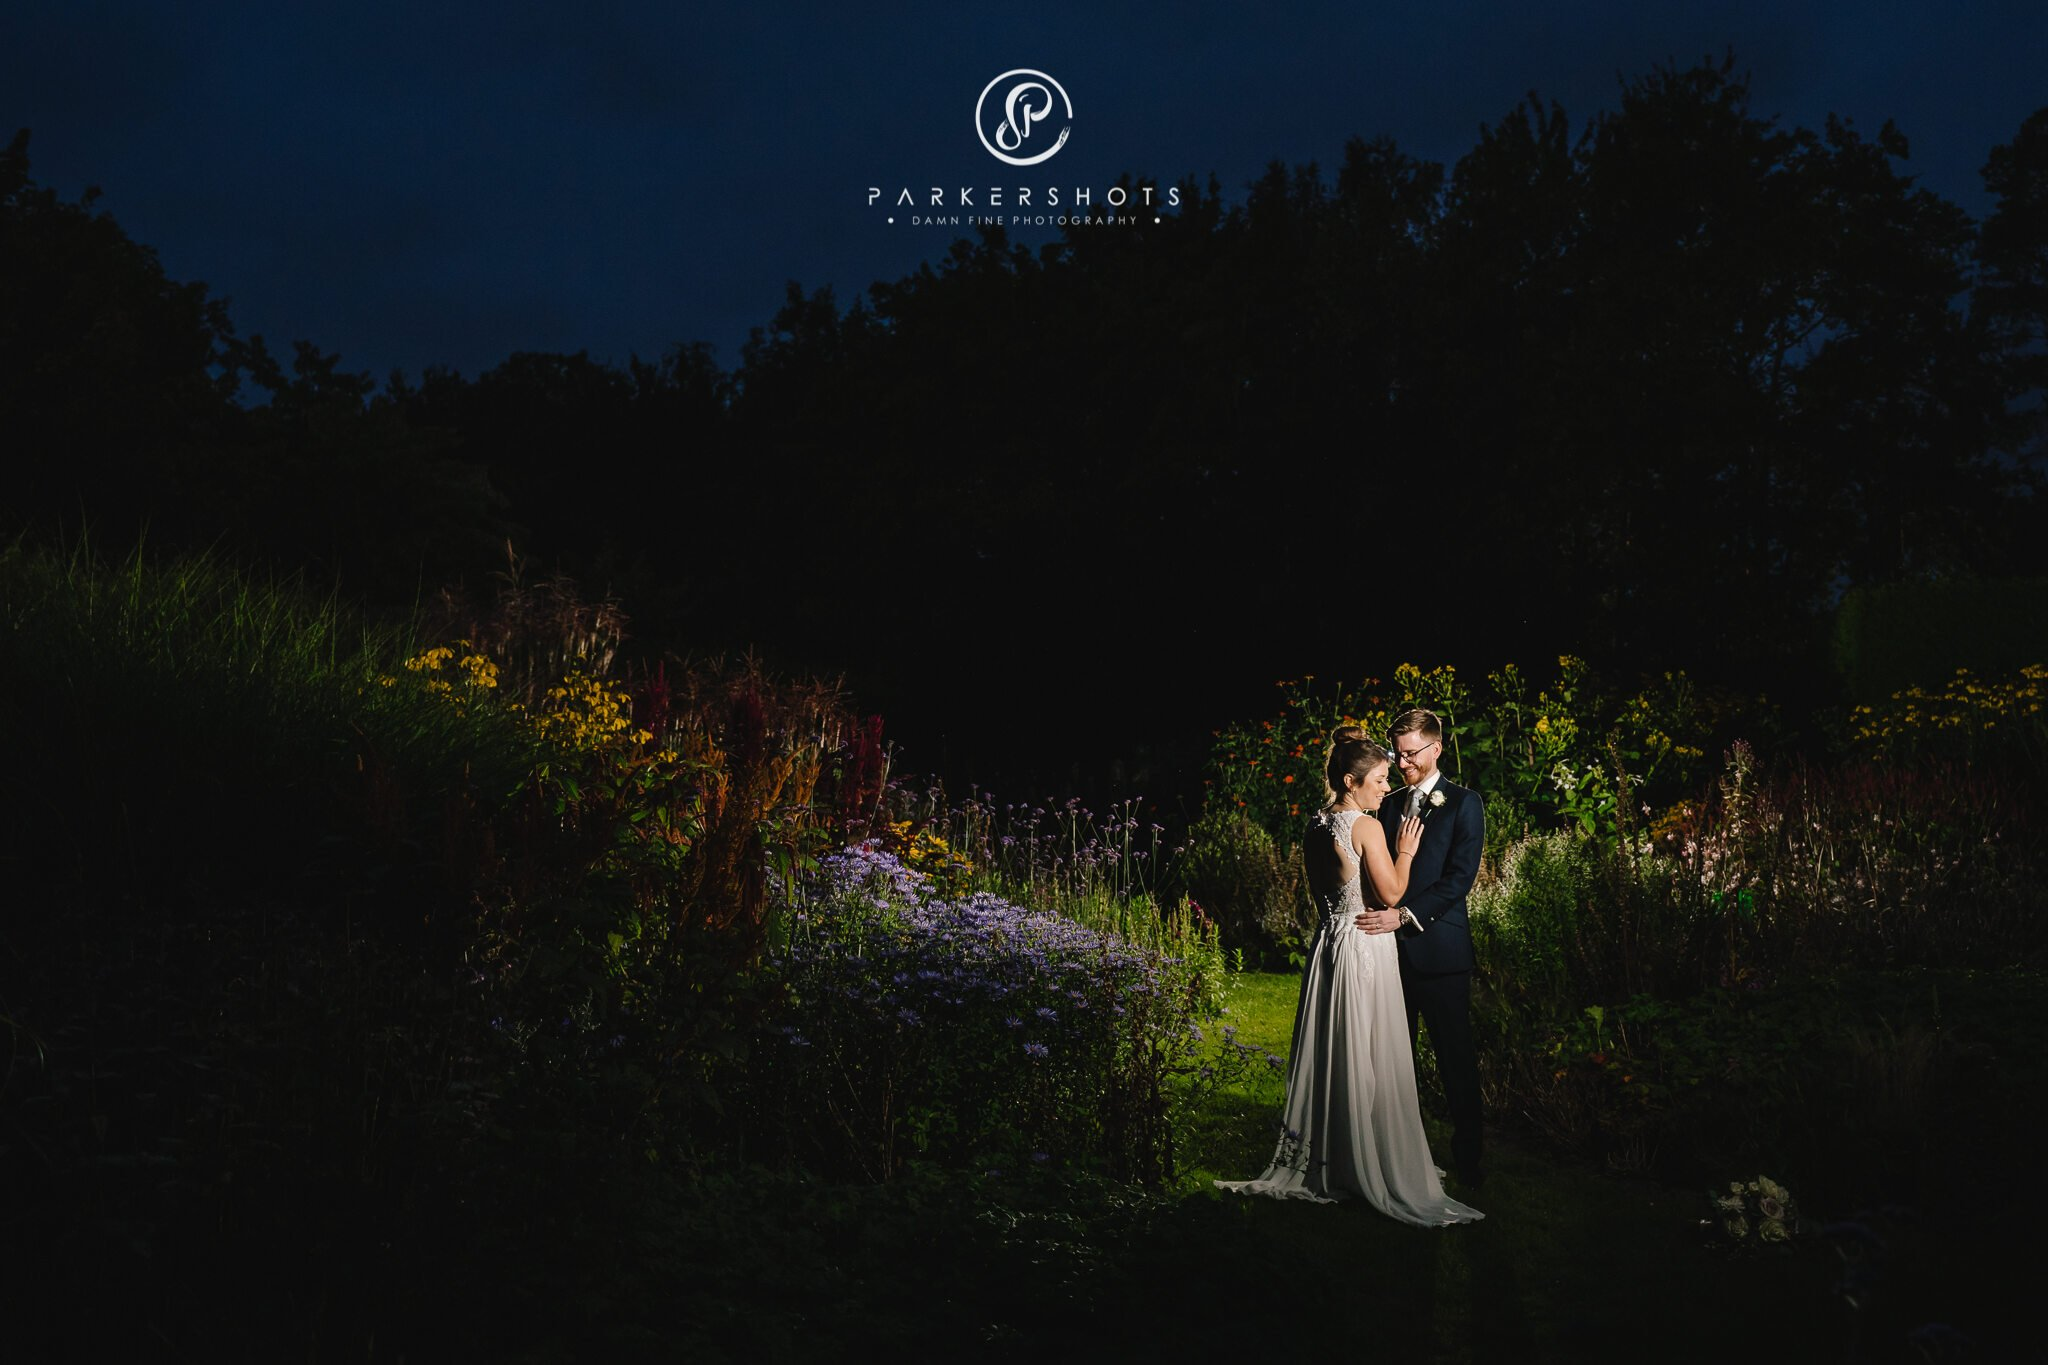 Nettlestead Place Wedding Photography by Parkershots